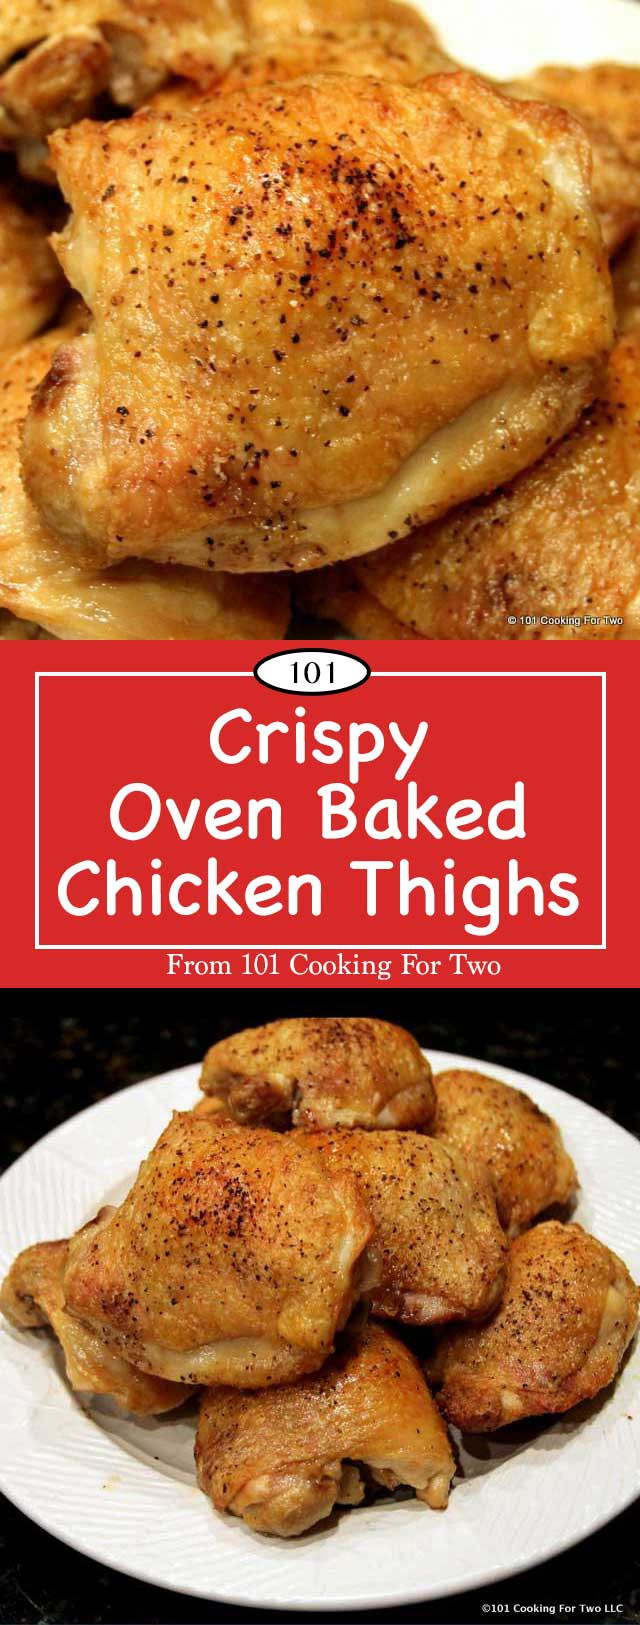 How To Cook Chicken Thighs On Stove  Crispy Oven Baked Chicken Thighs